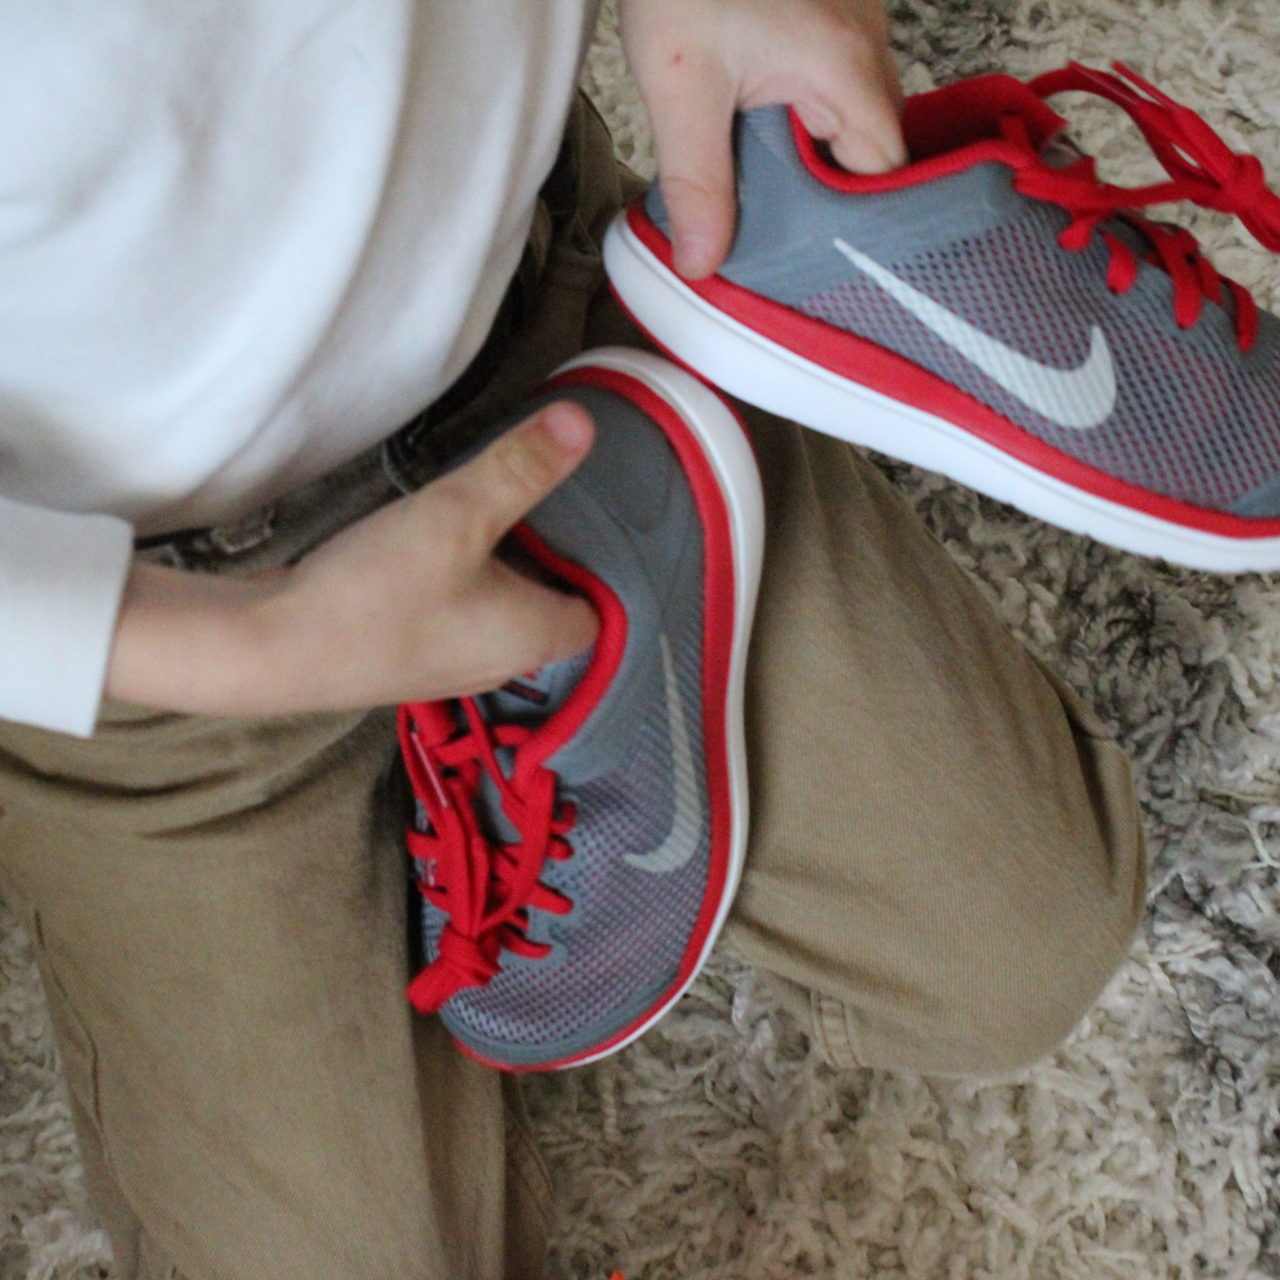 Shoe shopping made EASY with Easykicks! PLUS a giveaway!!!!